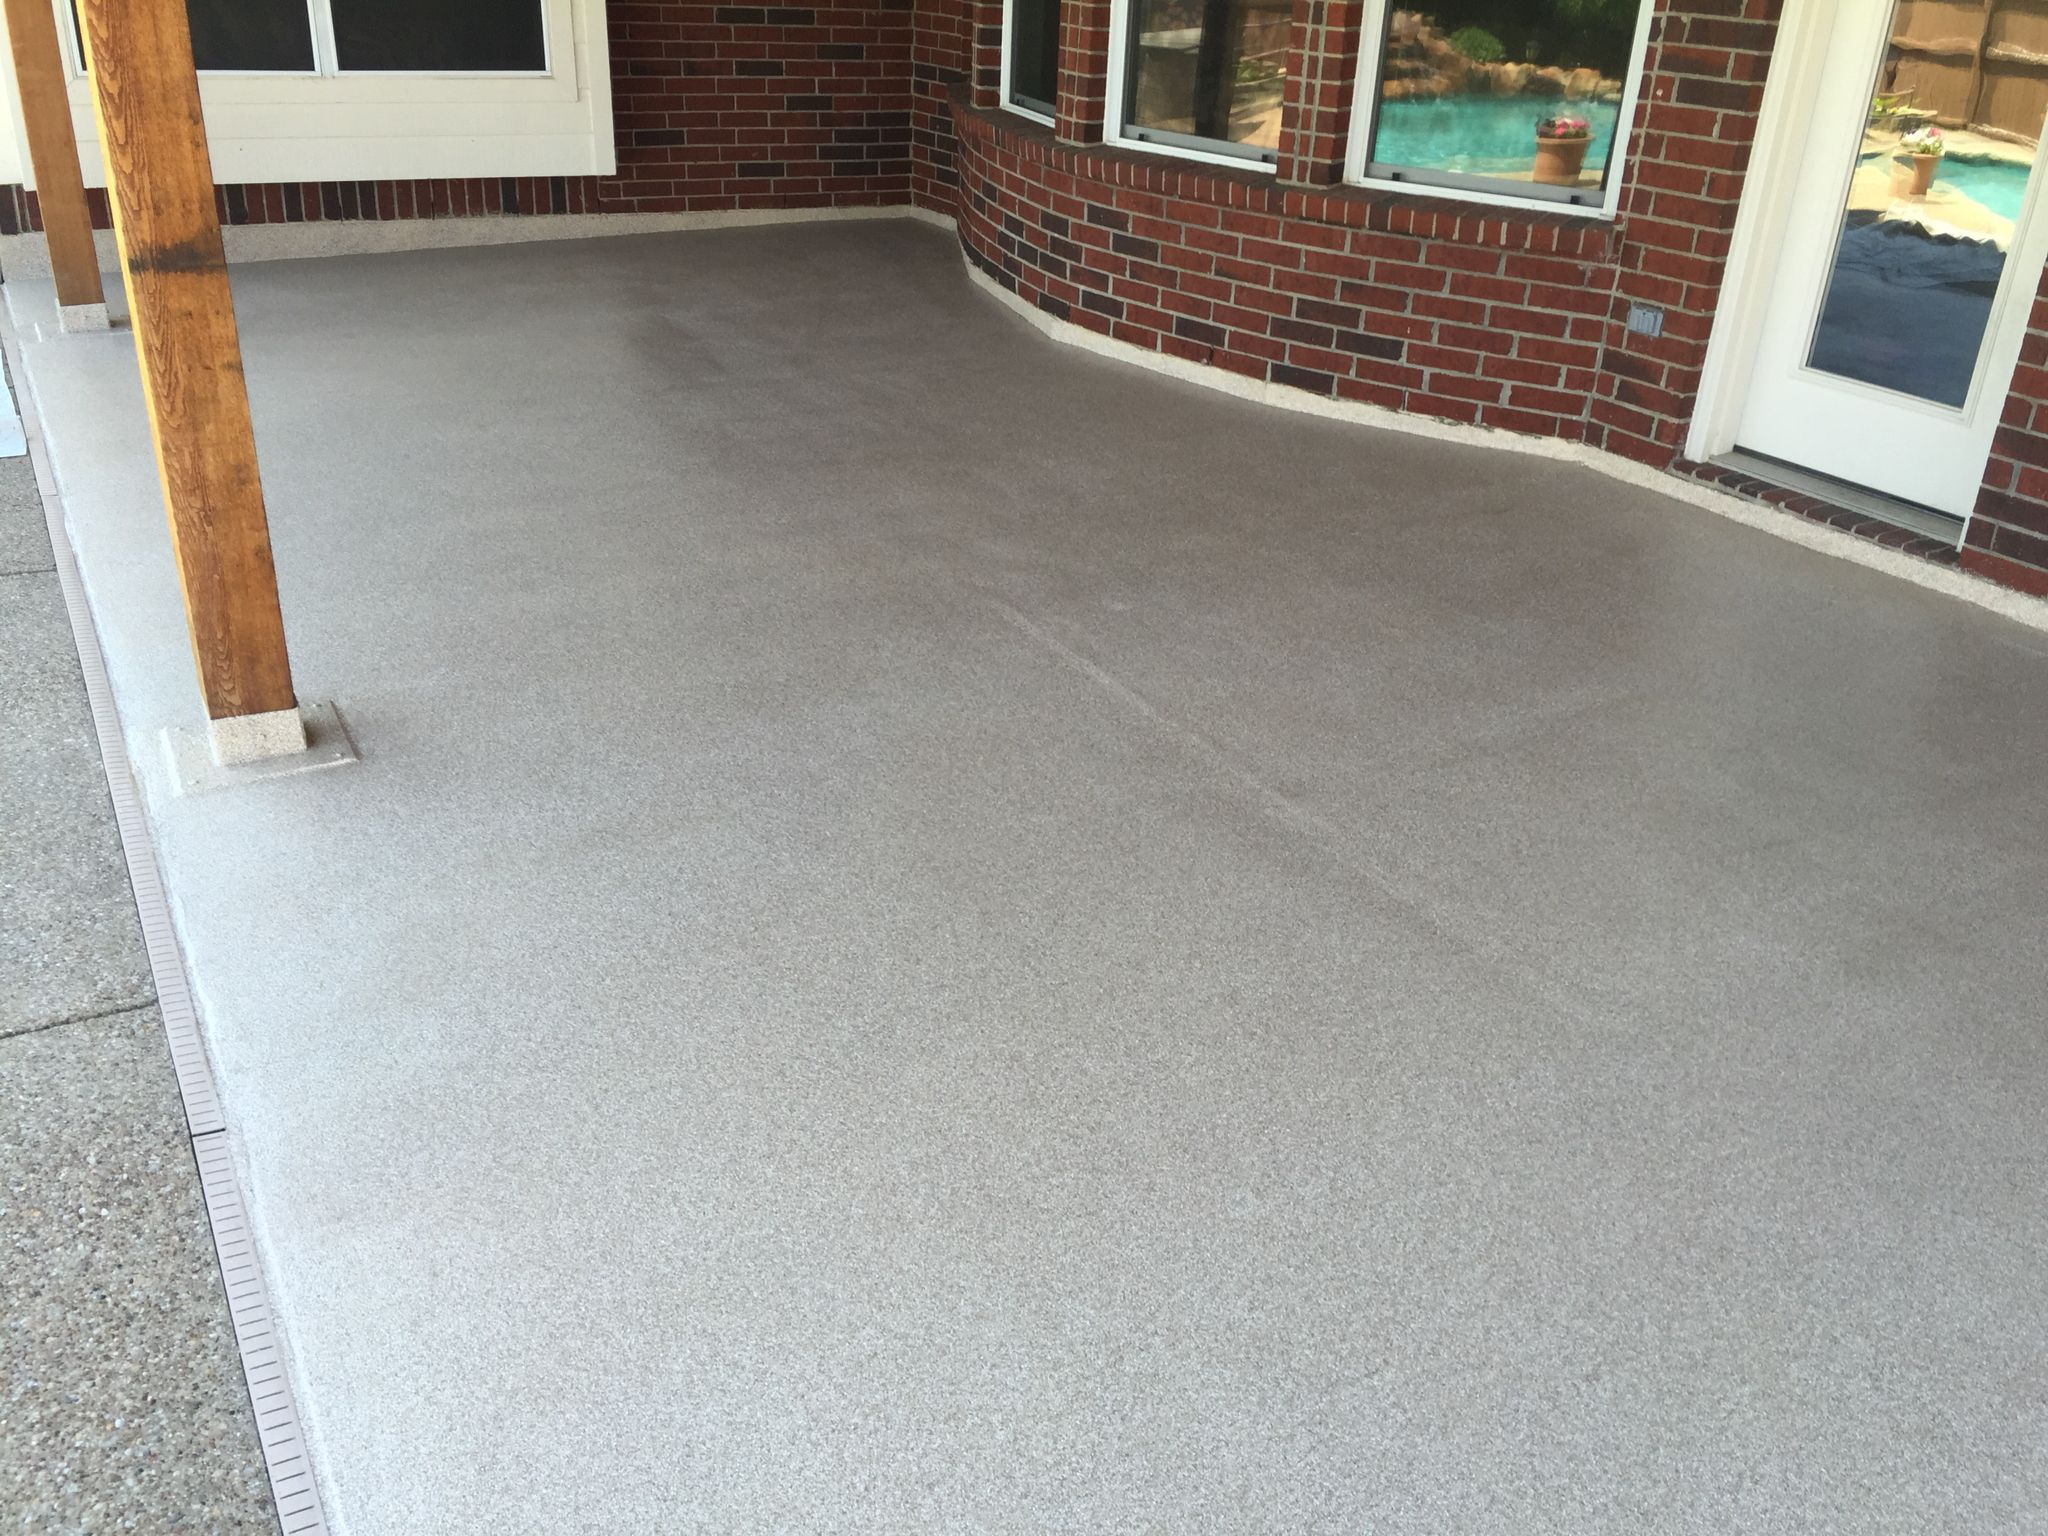 Patio Had Old Paint On It, I Ground Off The Old Paint And Installed One Of  My Epoxy Decorative Flake Floors. A Penetrating Waterproofer Was Applied  Before ...